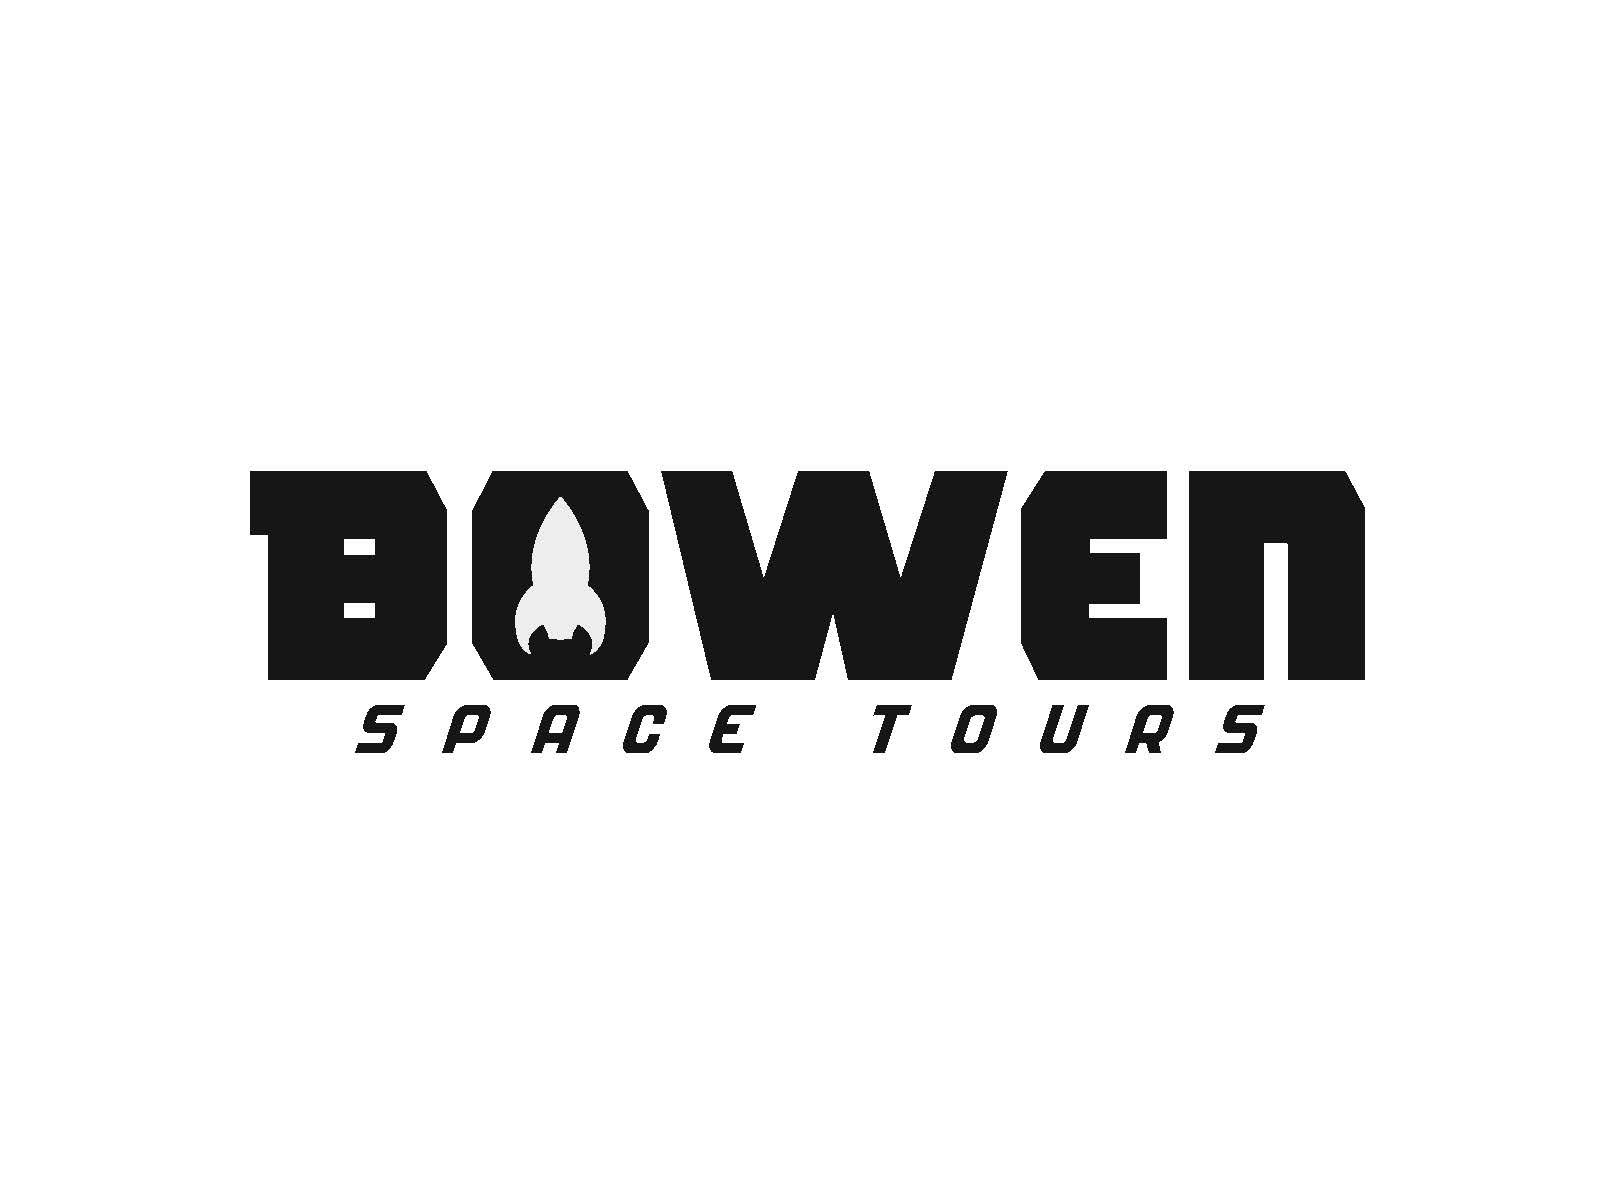 The counterform in this logo creates a space ship which is in relation to the title of the logo.